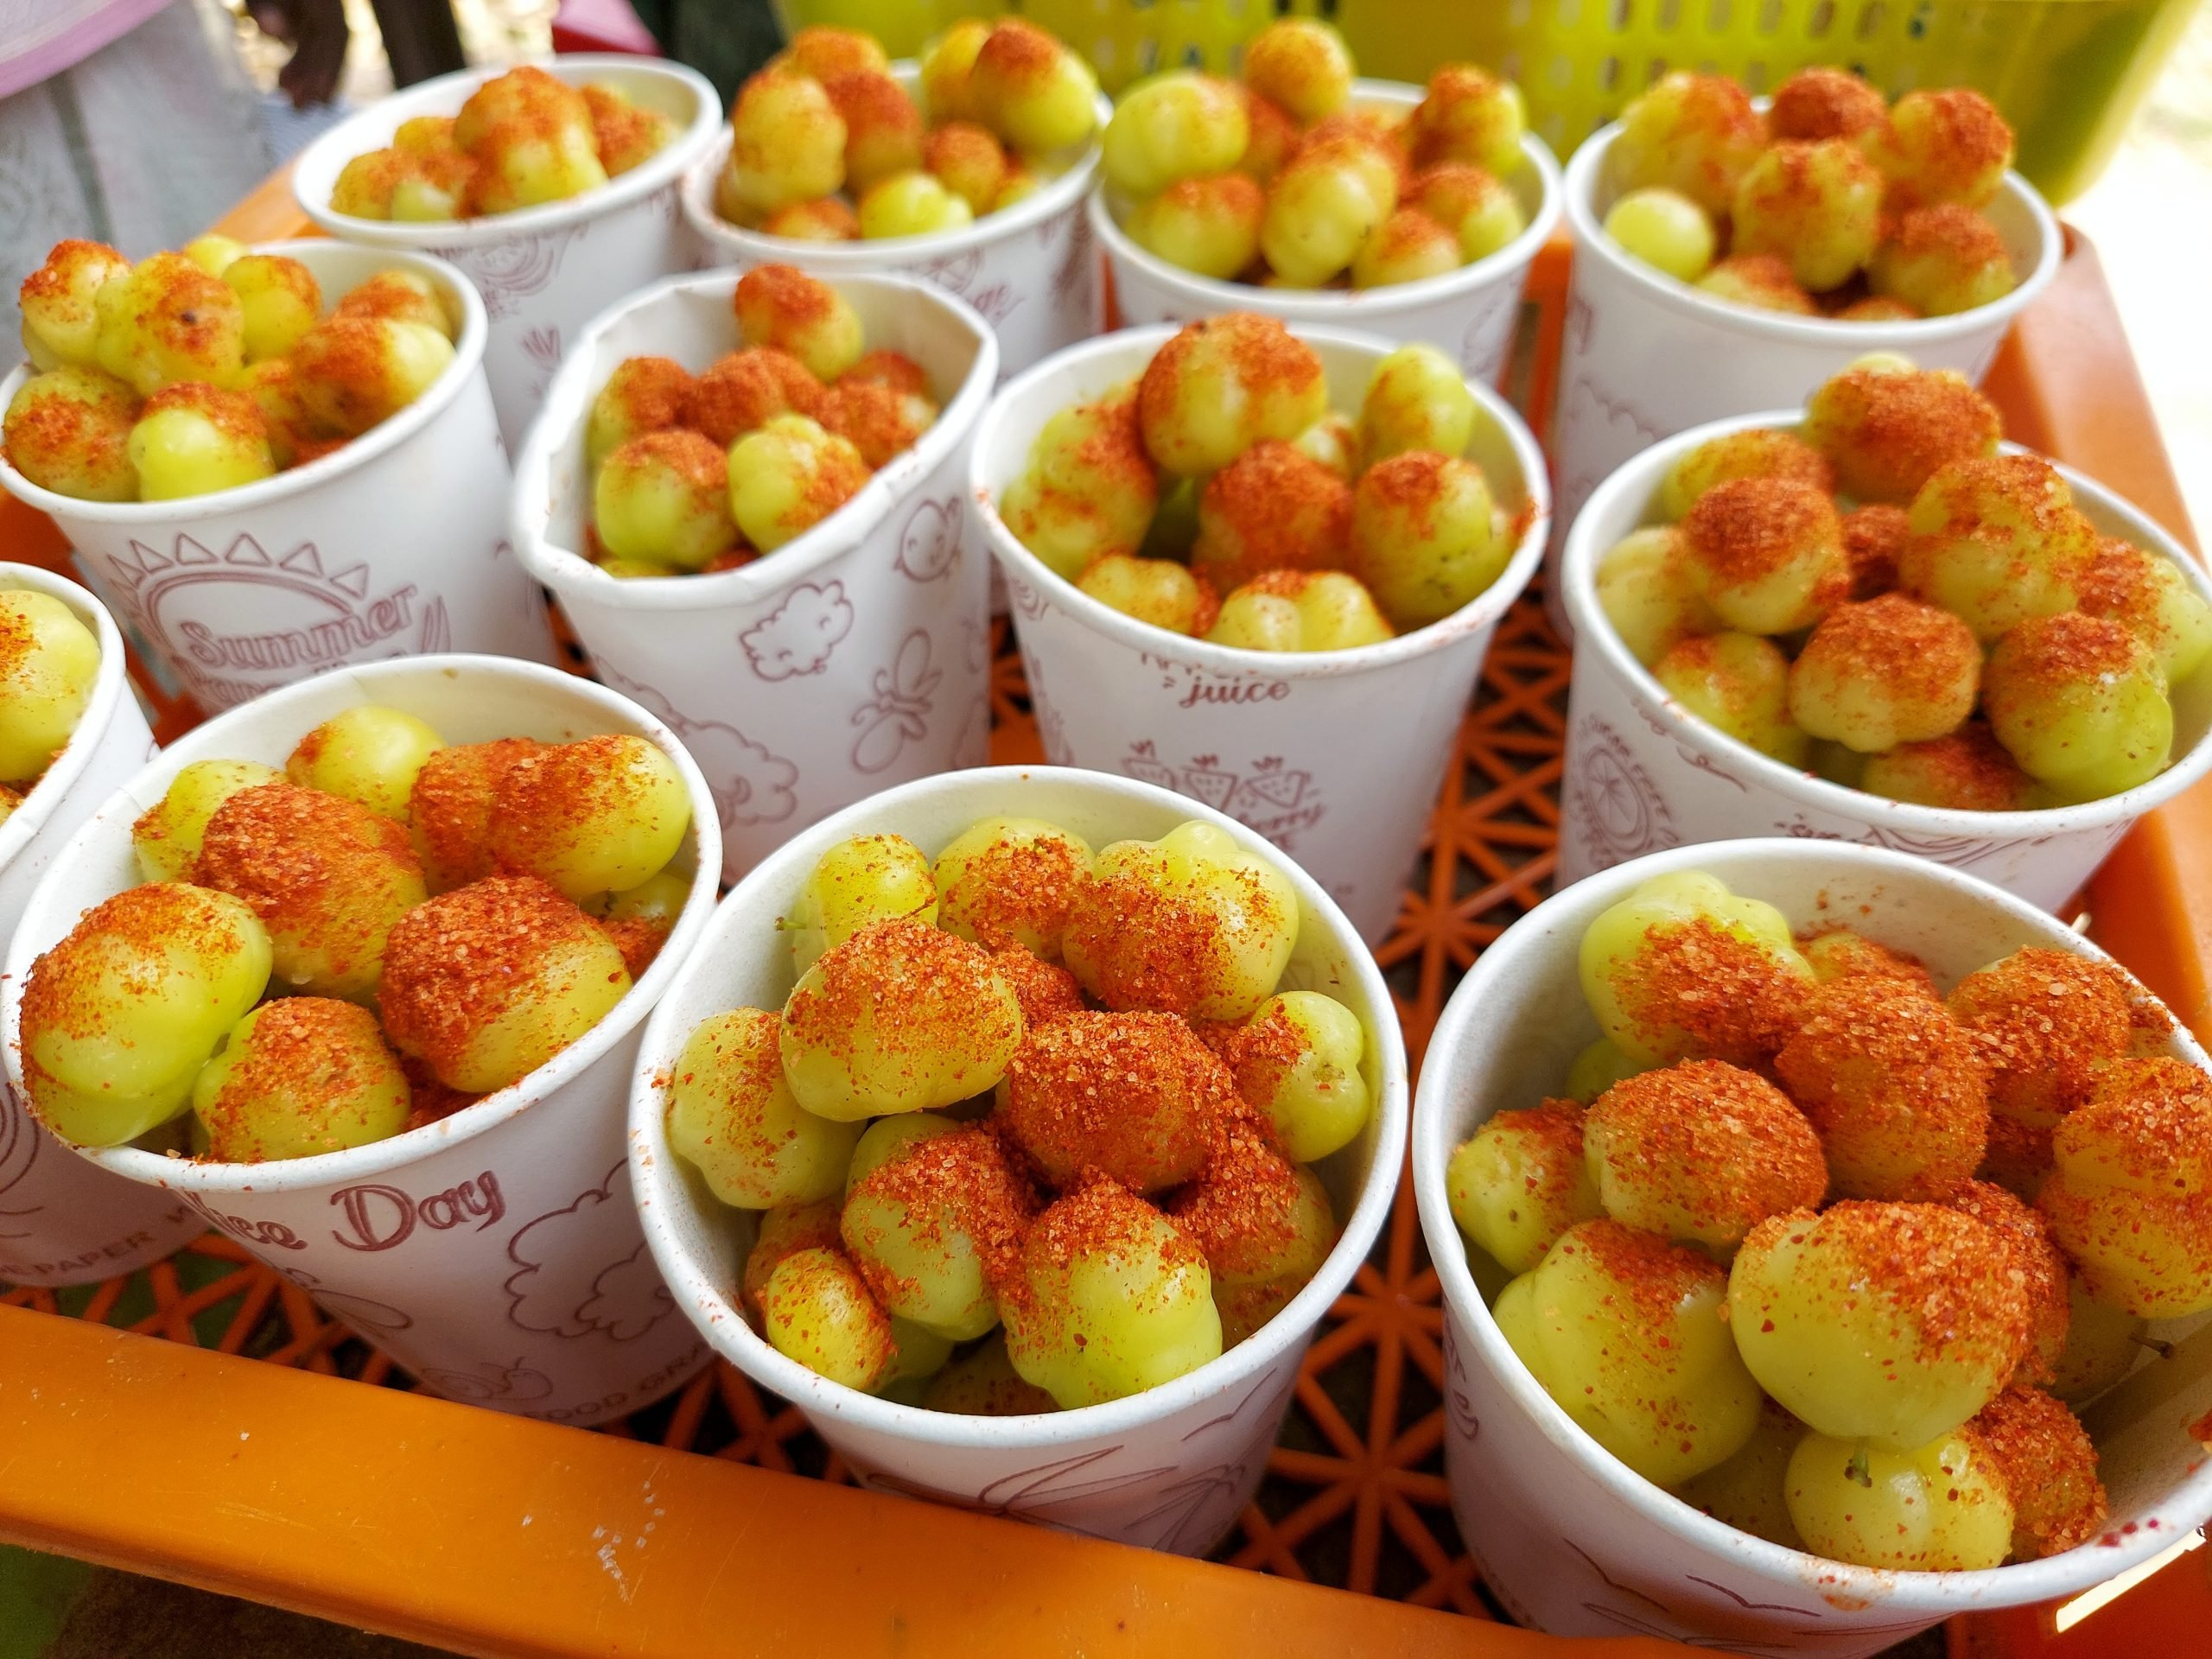 Gooseberry snack in paper cups for sale